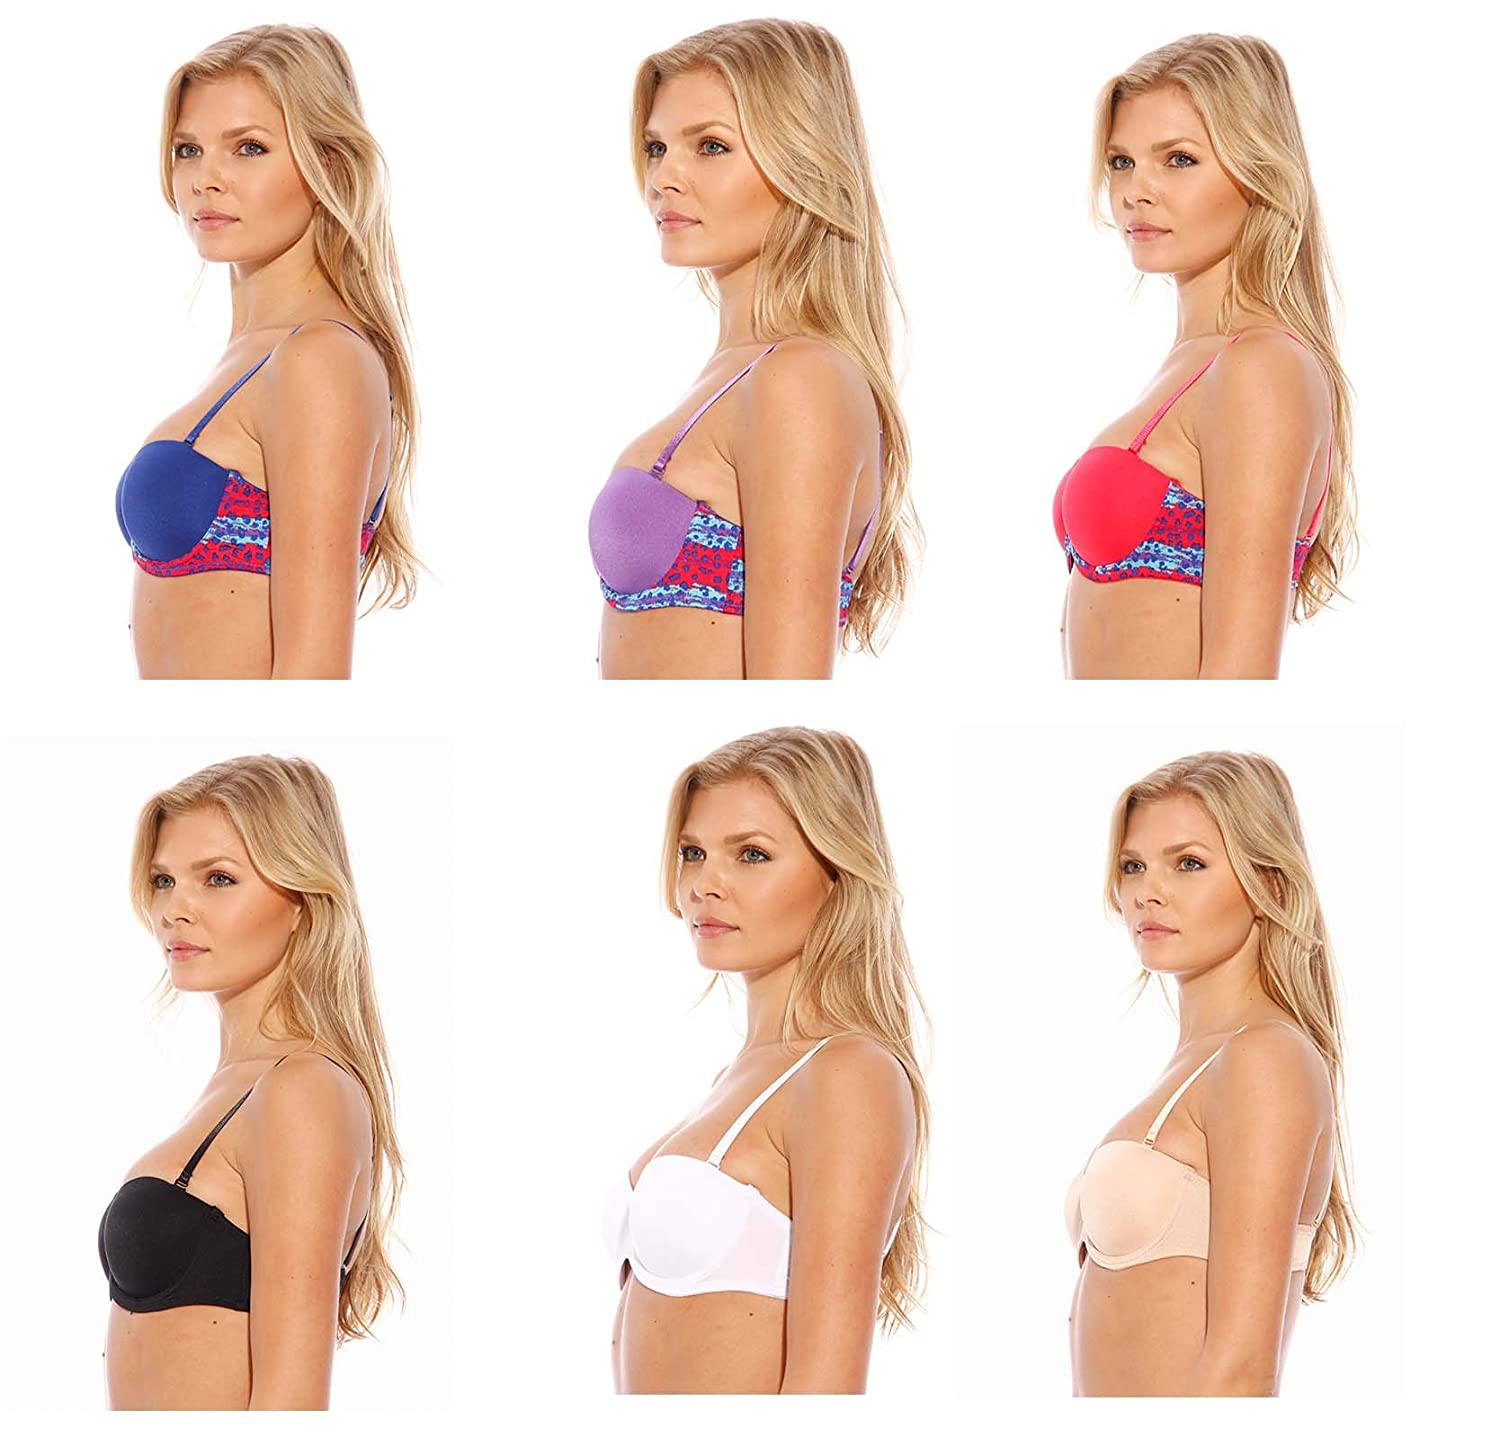 Petite to Plus Size Full Figure Just Intimates Bras for Women Pack of 6